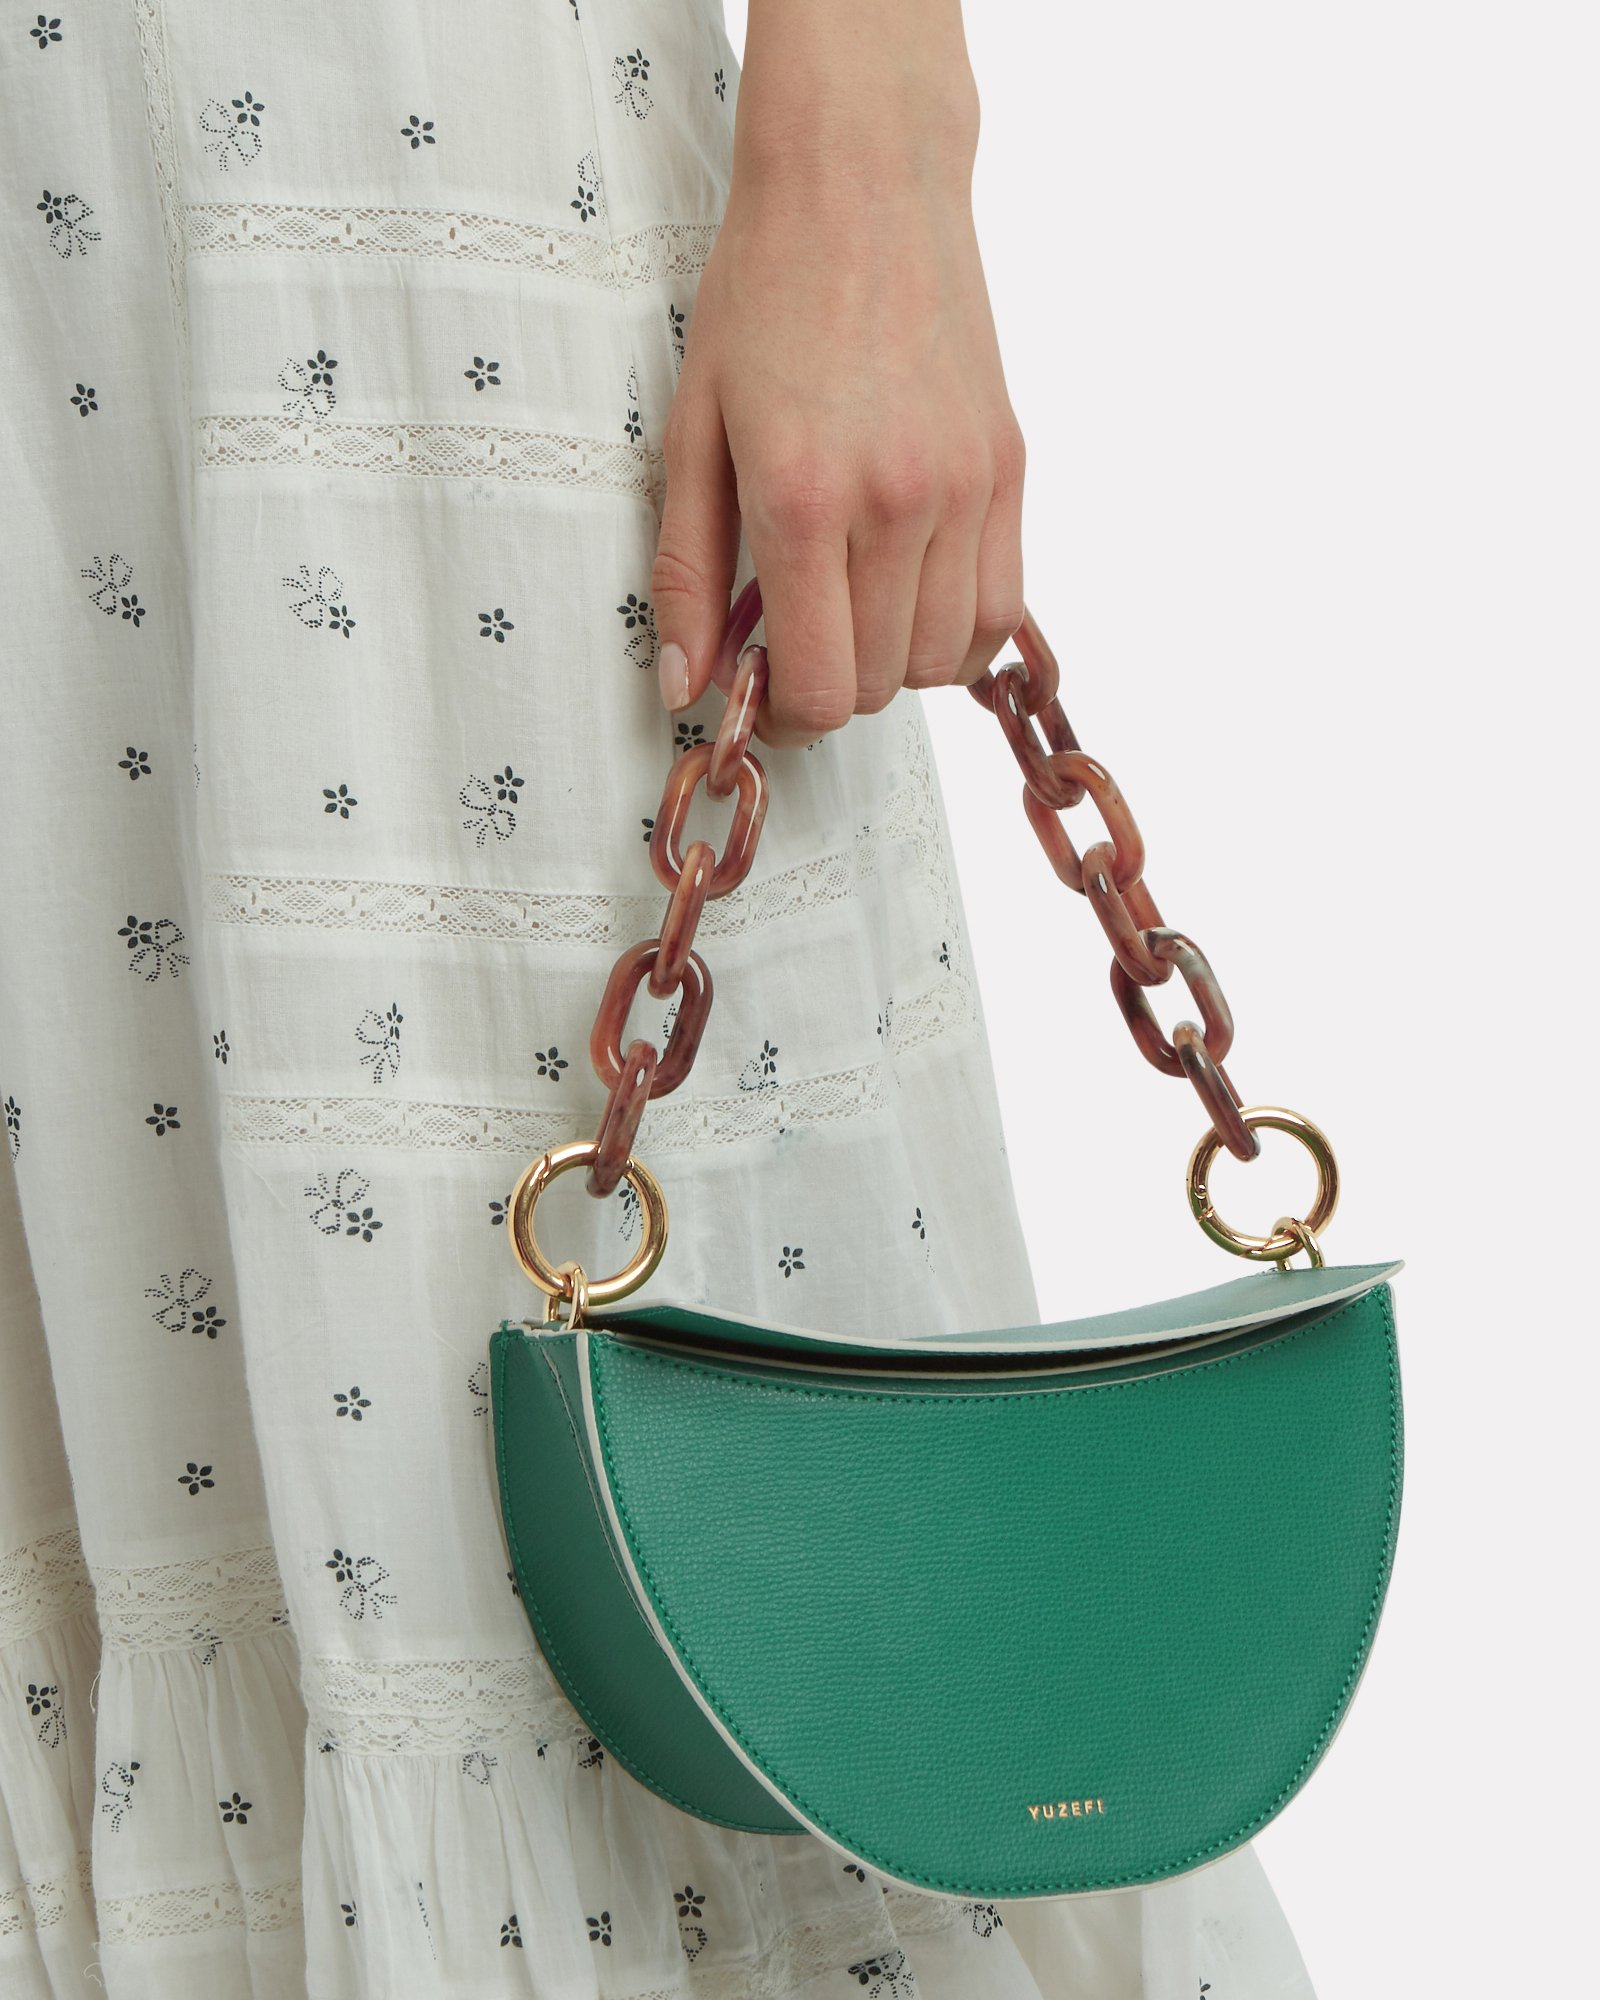 Doris Half Moon Leather Bag